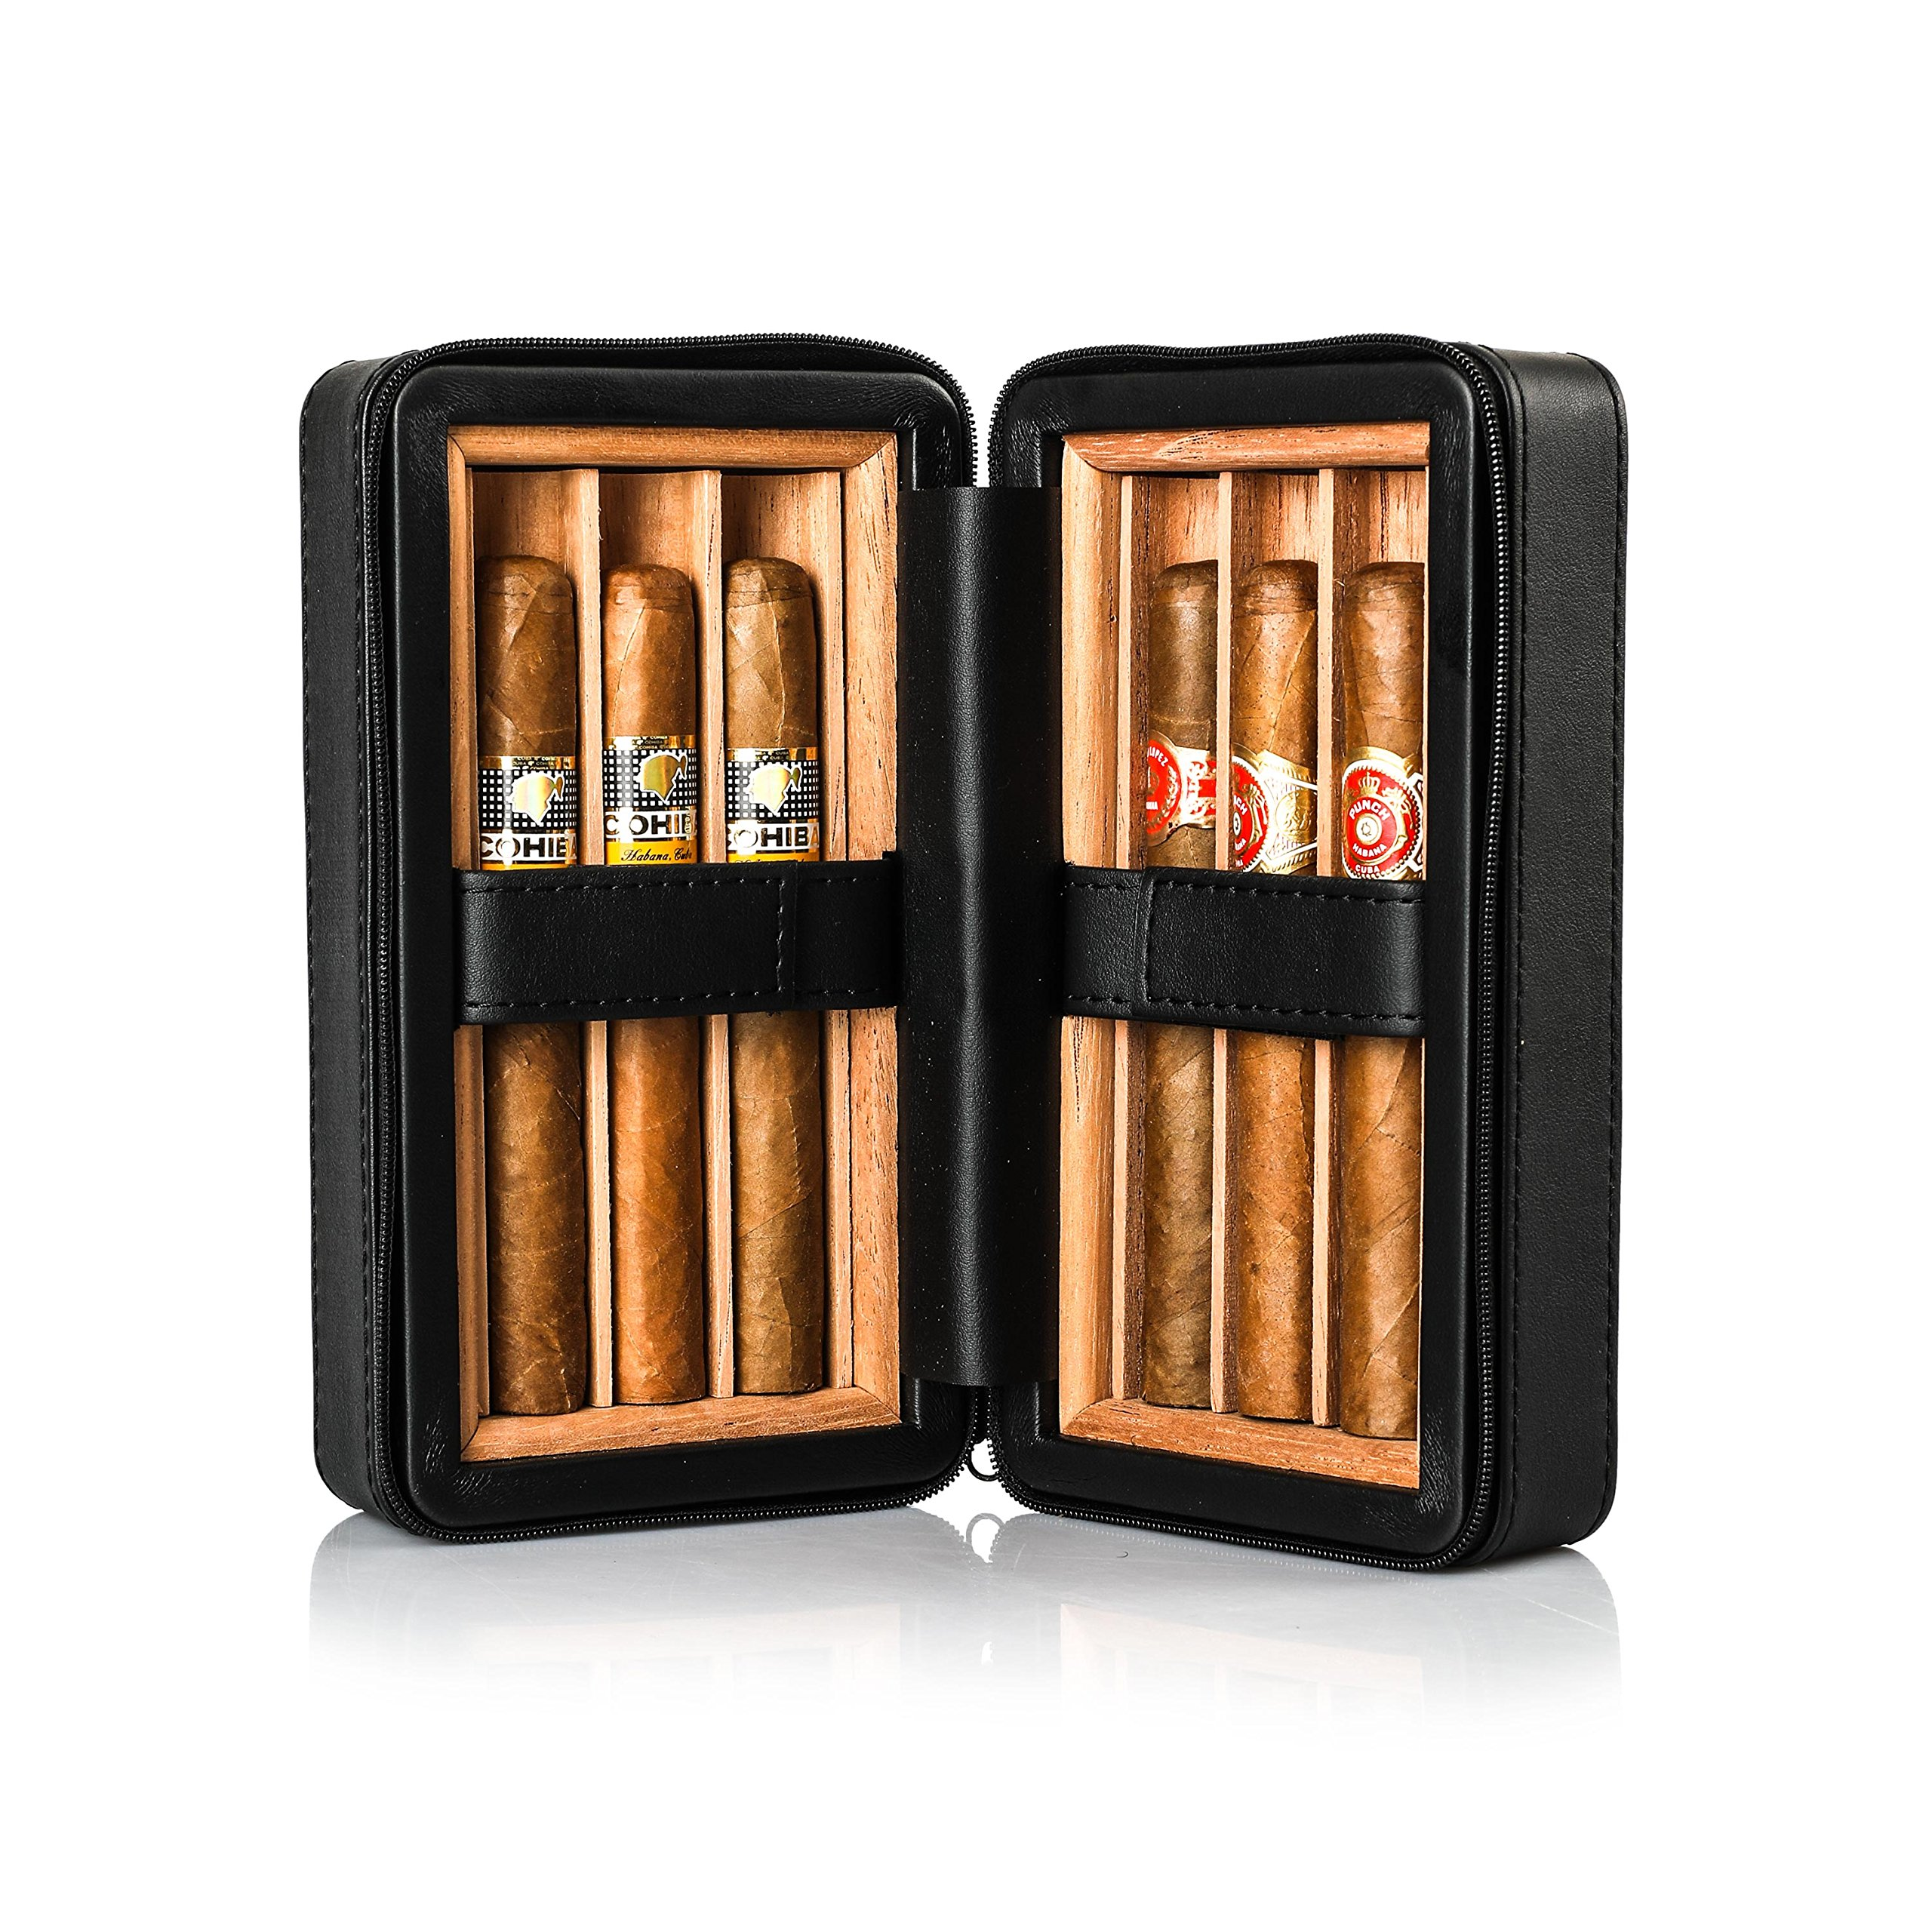 Jamestown Cigar Barcelona Leather Travel Cigar Case - Handmade Cedar-Lined Travel Case Wrapped in Soft Synthetic Leather - Holds up to 6 Full-Size Cigars by Jamestown Cigar (Image #1)